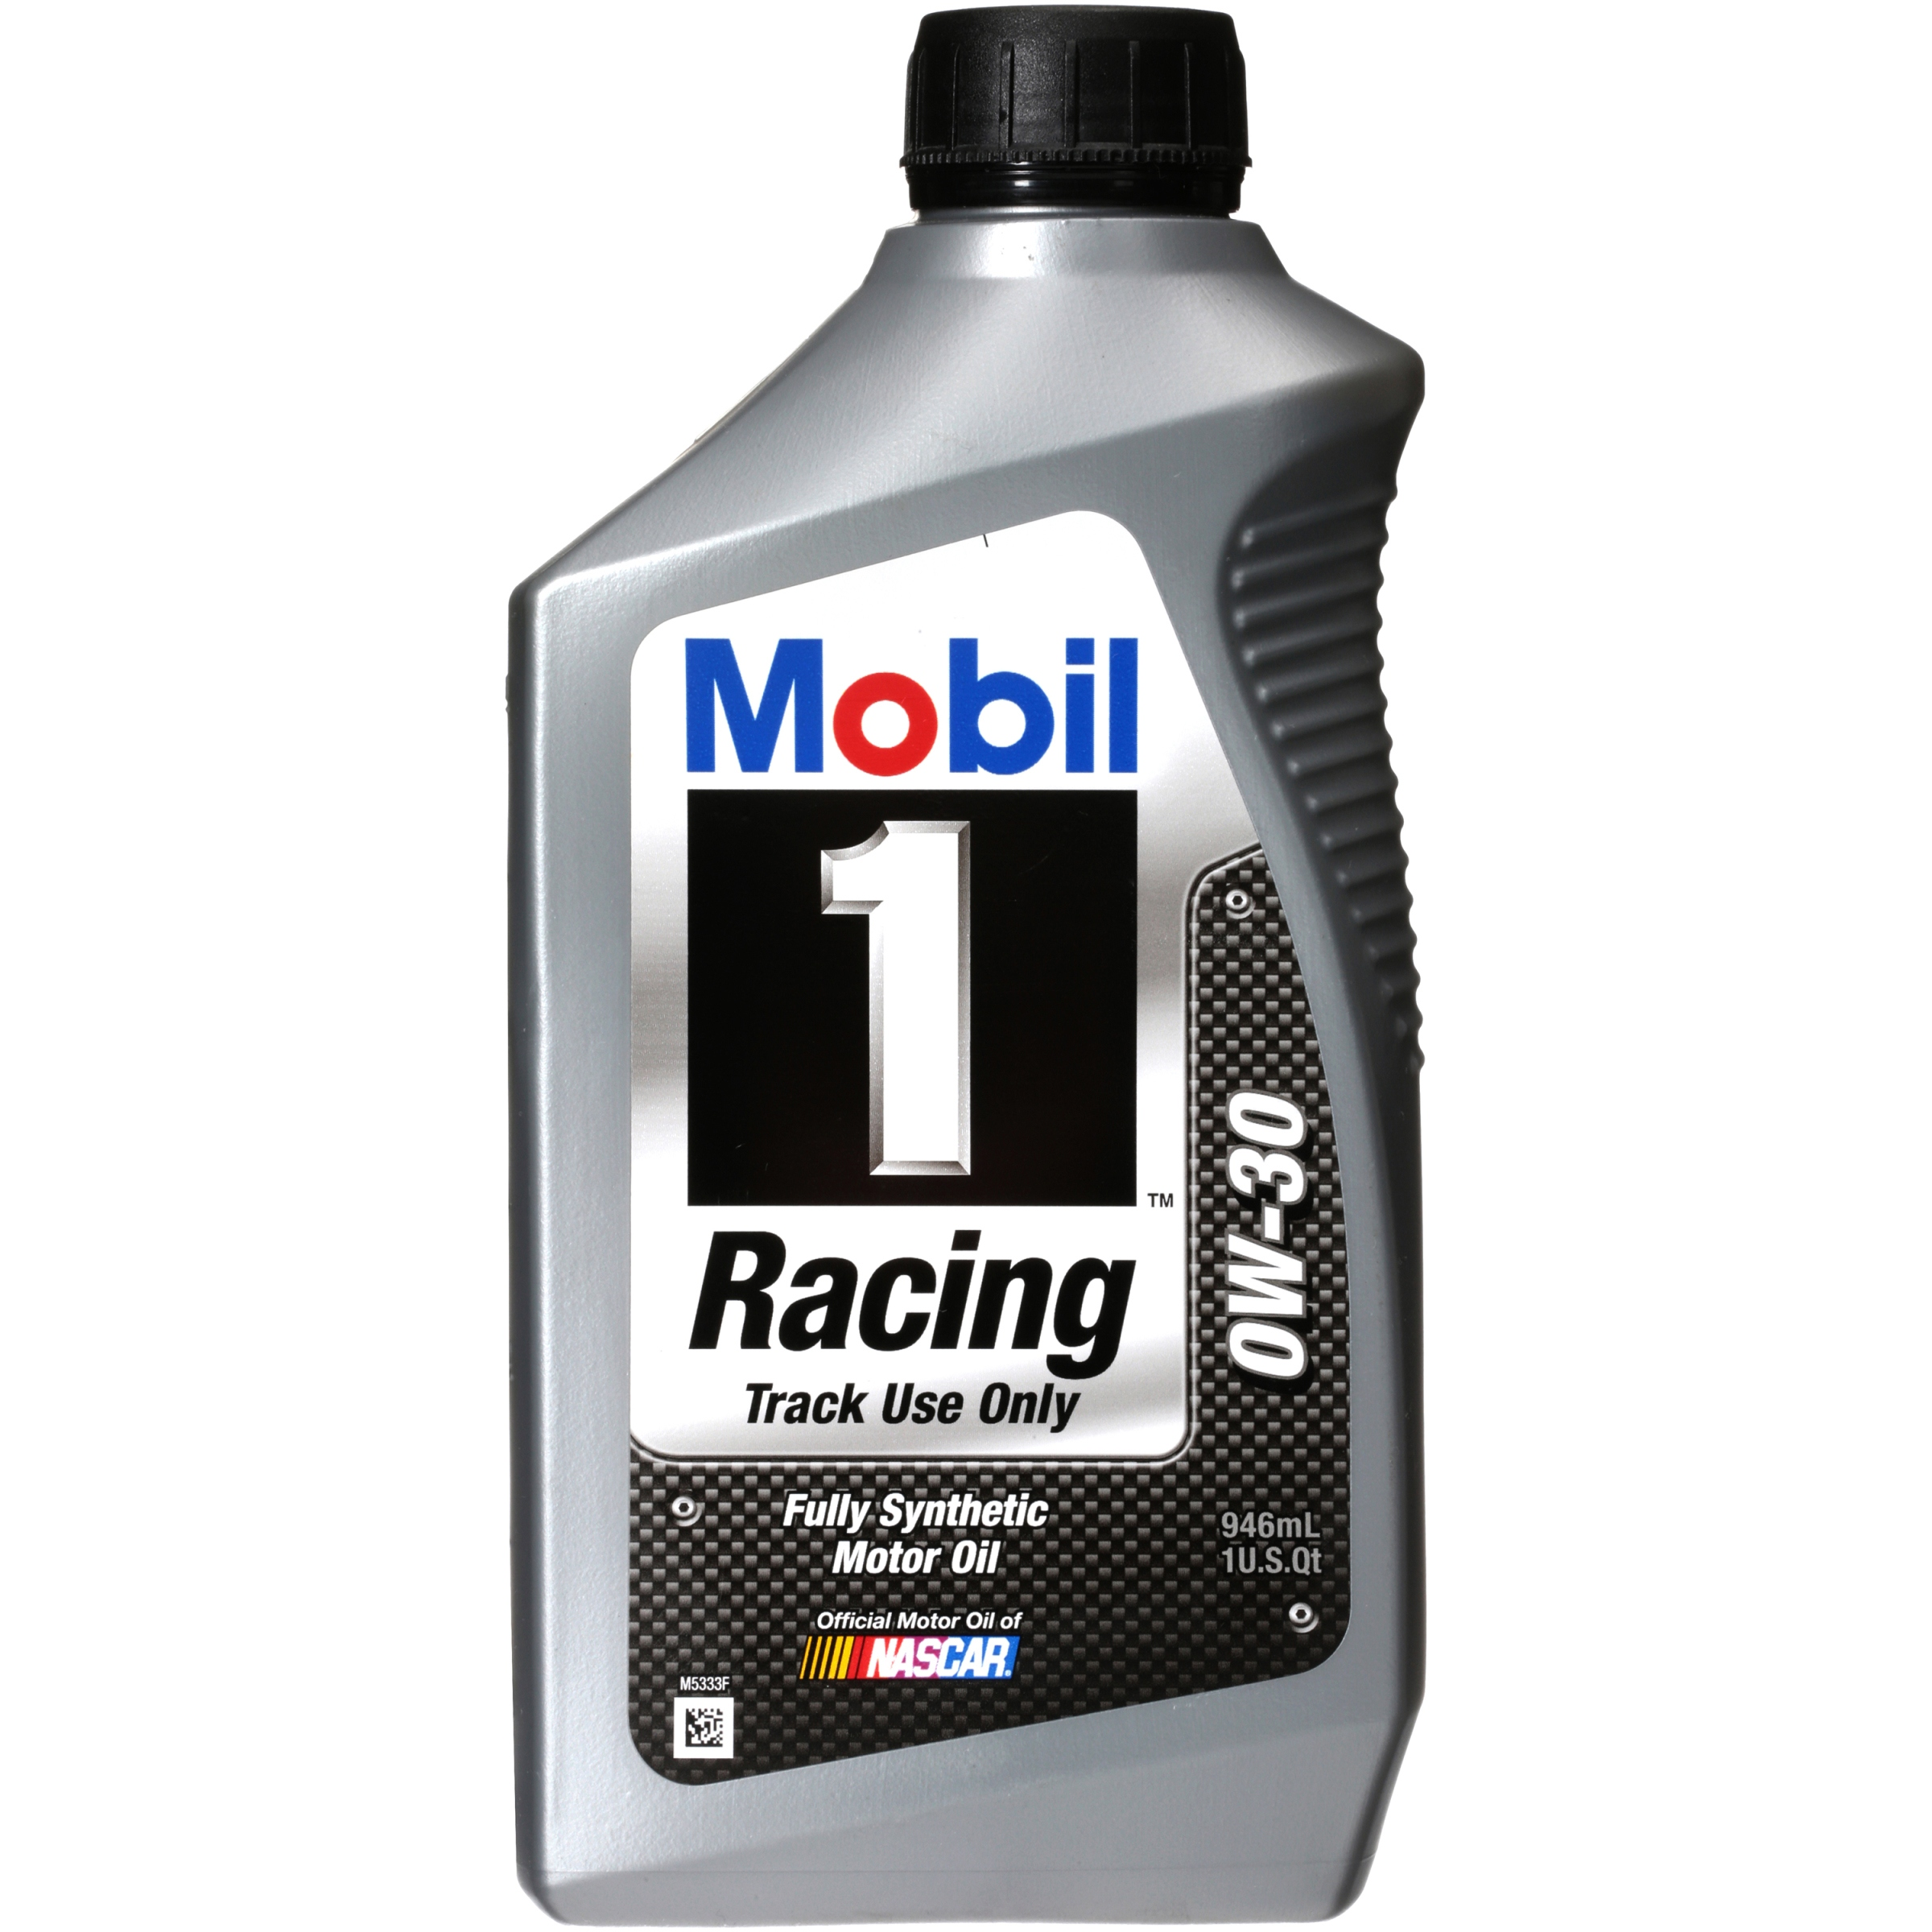 Mobil 1 Racing Synthetic Motor Oil 0W30 - 1 Quart